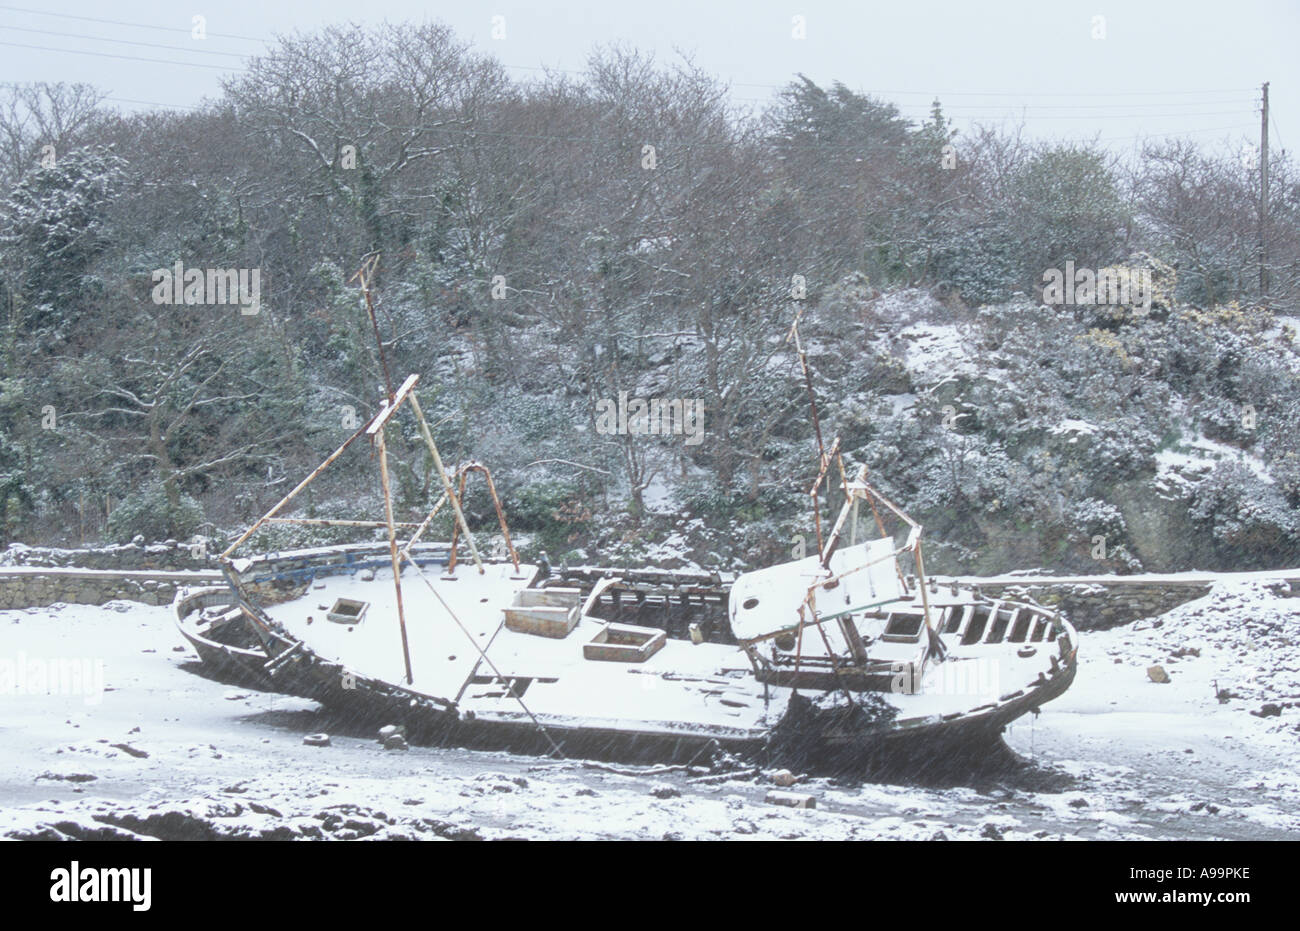 Shipwreck in the snow - Stock Image